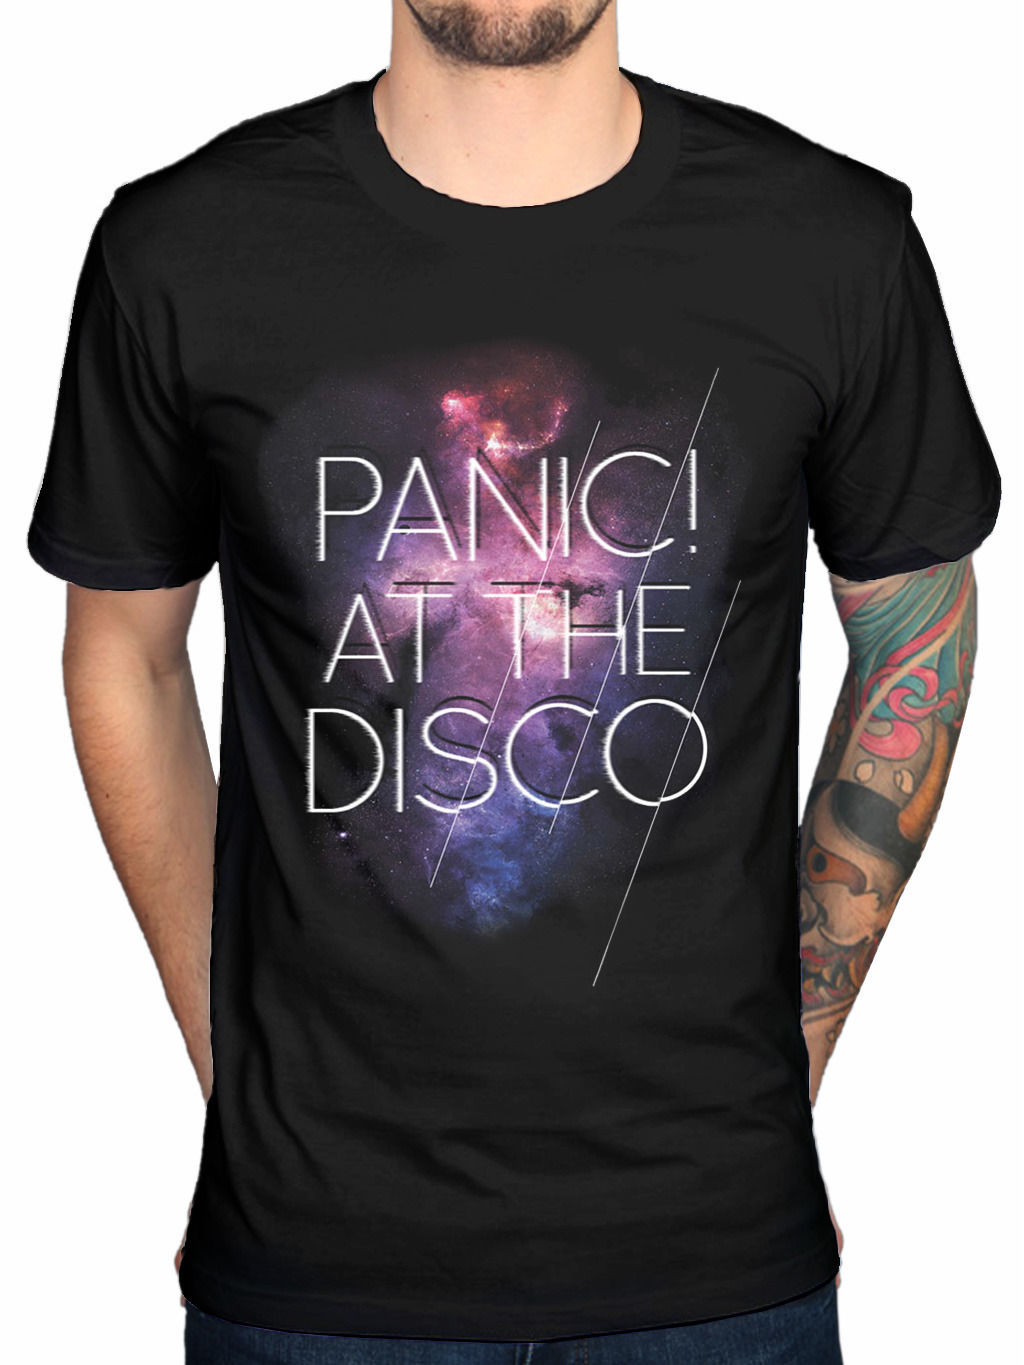 Design your own t shirt chicago - 2017 New Cool Panic At The Disco Cosmic T Shirt Patd Panic Live In Chicago